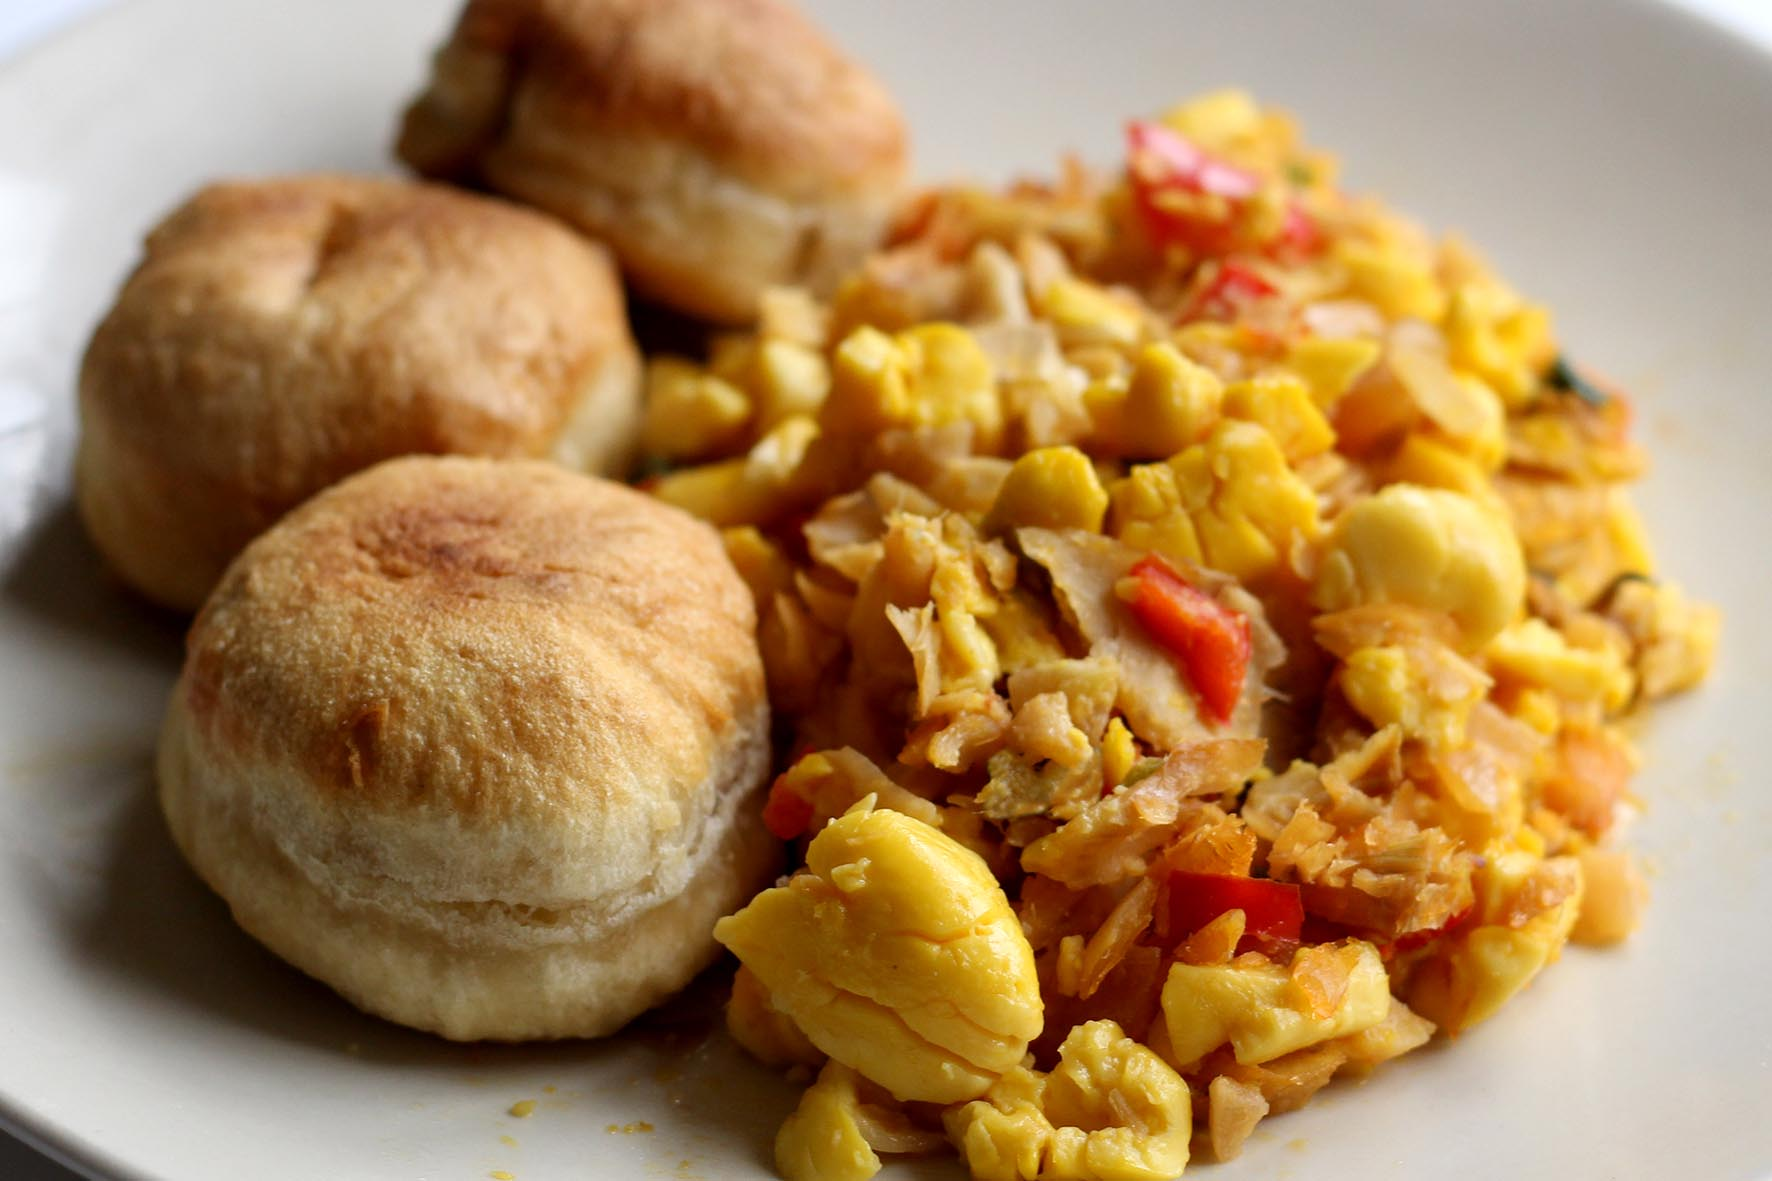 Jamaican Cuisine Cafe Five Jamaican Comfort Foods You Need To Try Original Flava